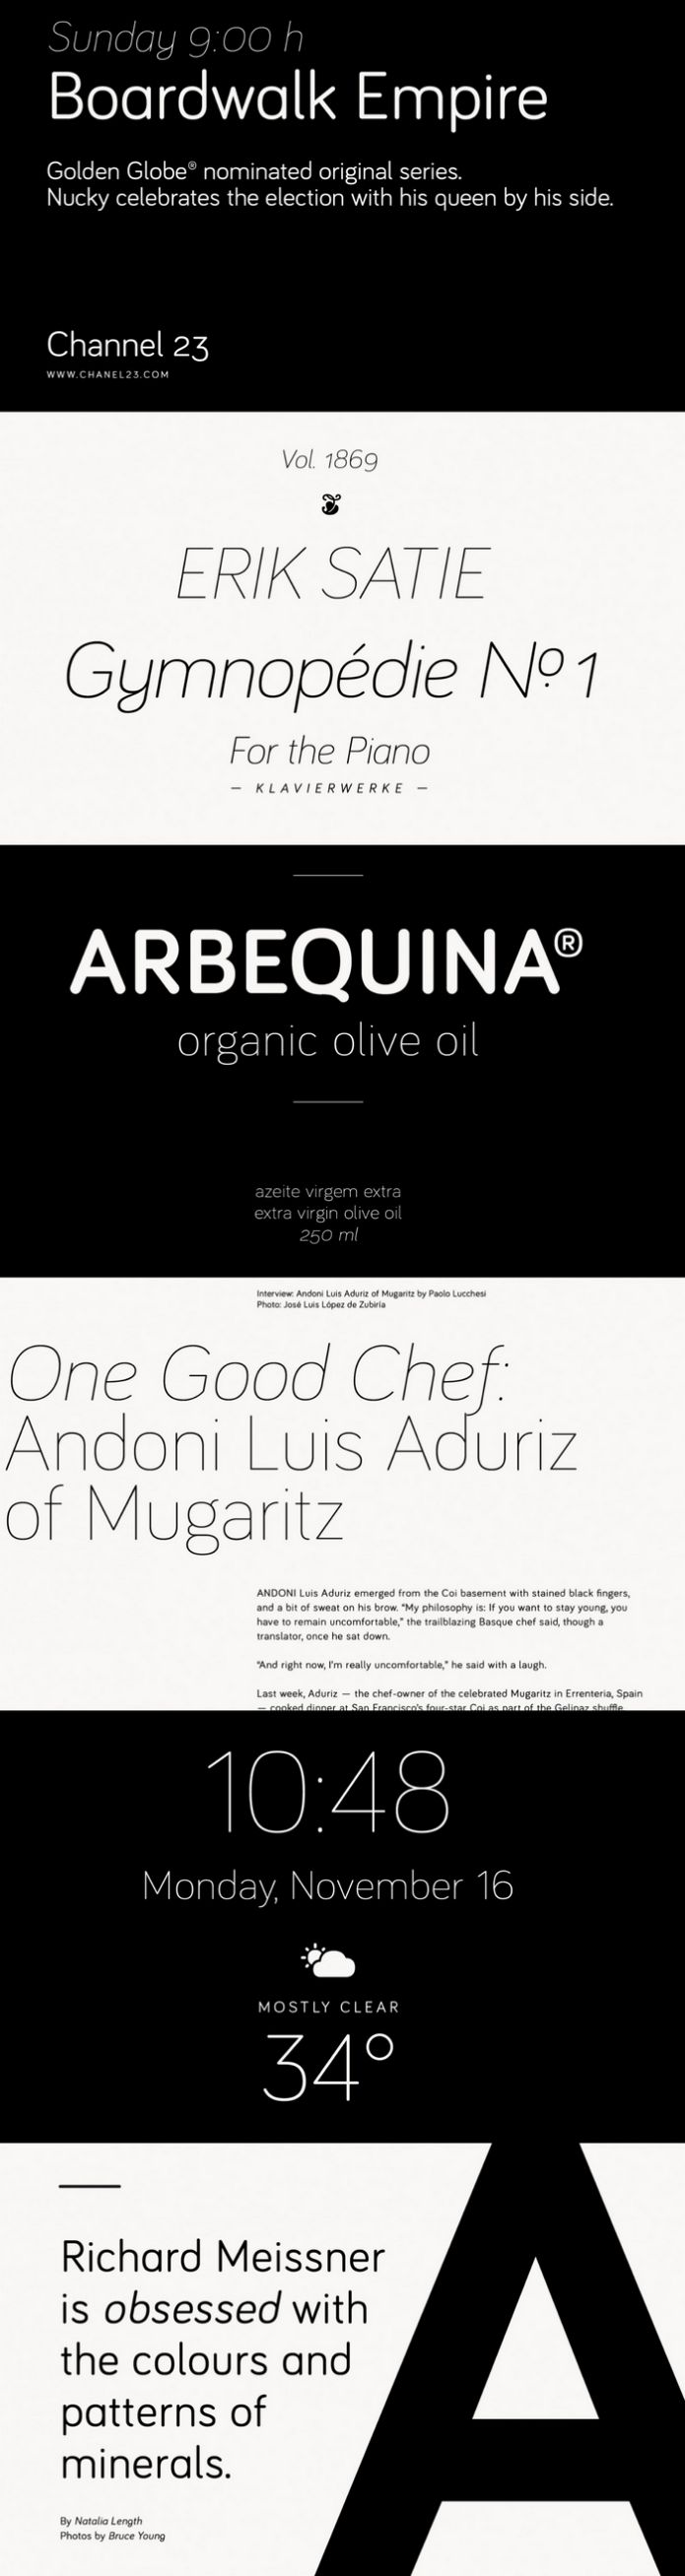 What do you think about Bariol Free Typefaces? This is a modern, new rounded, slightly condensed typeface designed by atipo ®. With its sober shapes and its simple construction, it's very readable even at small sizes. Check it out and add to your fonts collection right now just a click!